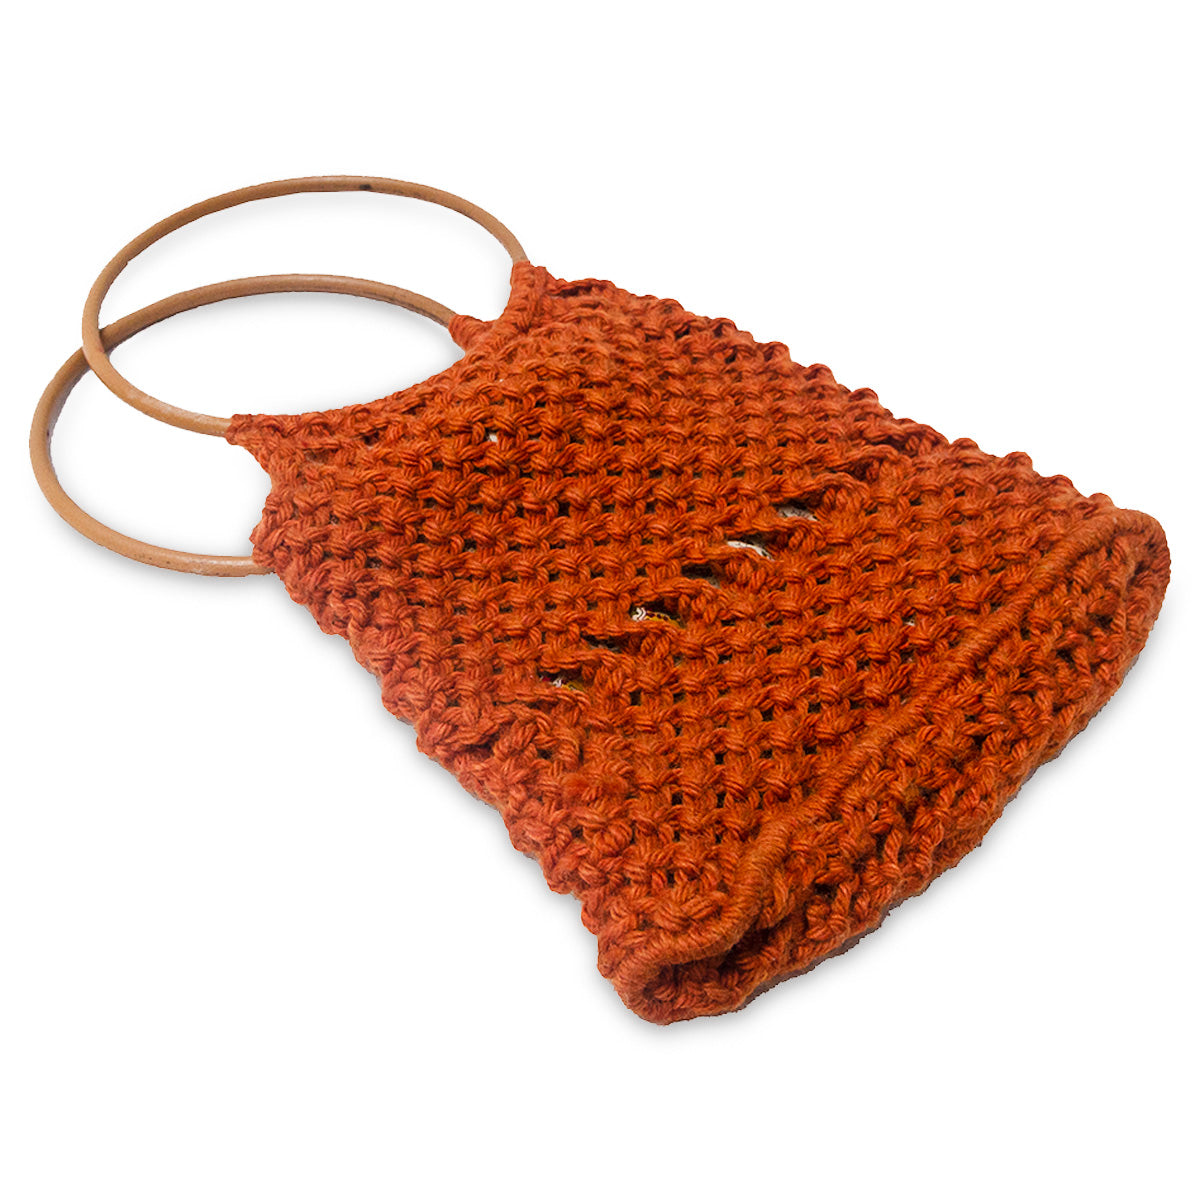 Vintage Macrame Handbag, Dark Orange 3